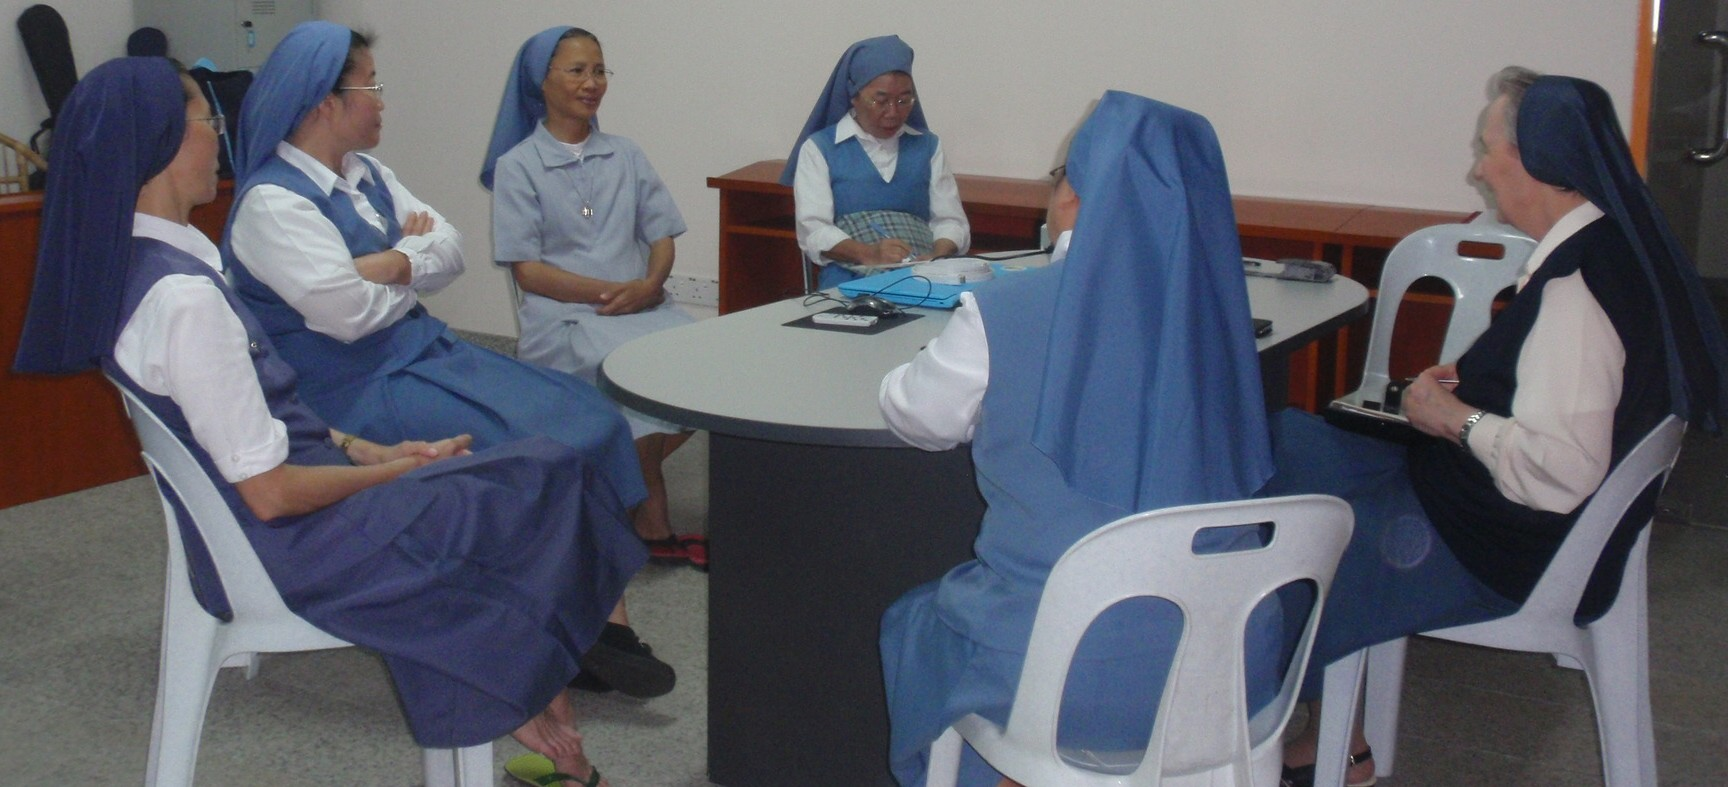 The sisters listen to one another during a sharing session with Sr Anna Maria Parenzan (R) with Sr Yolanda Dionisio as her interpreter (back to camera).